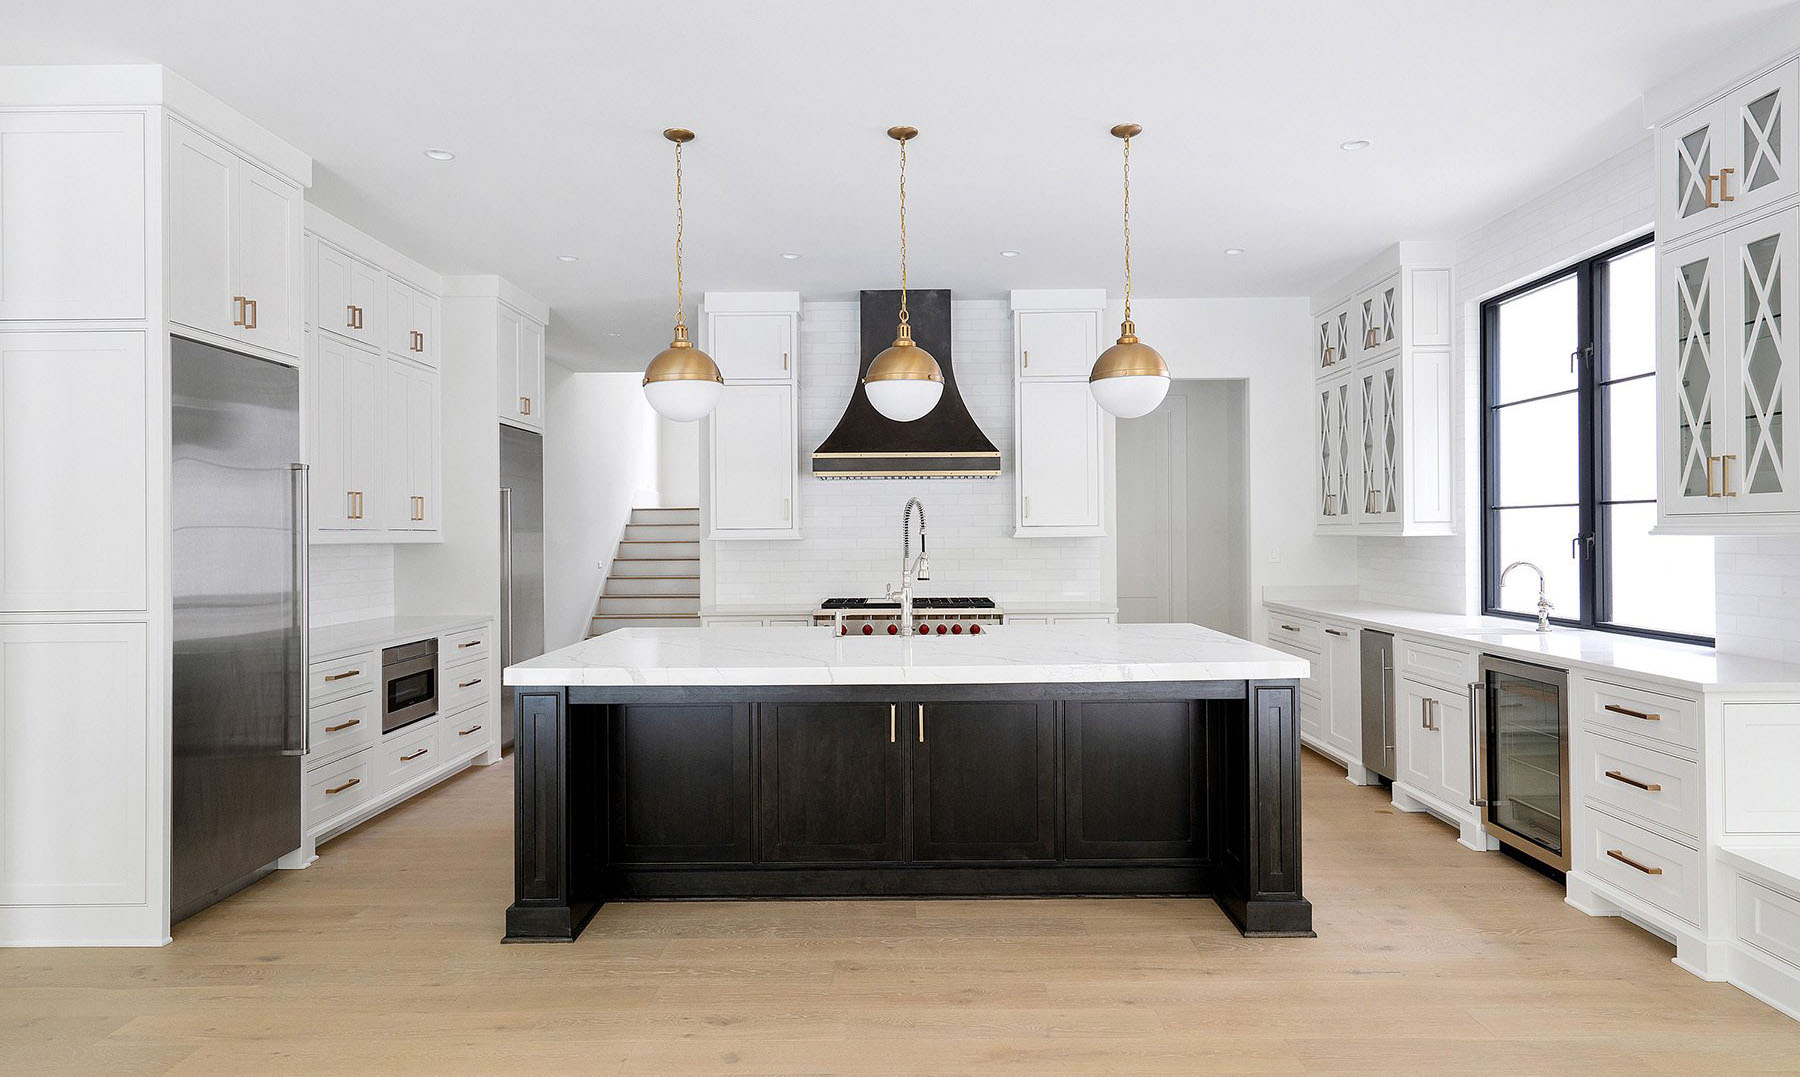 Two tone kitchen cabinets featuring white uppers and lowers with a black center island.